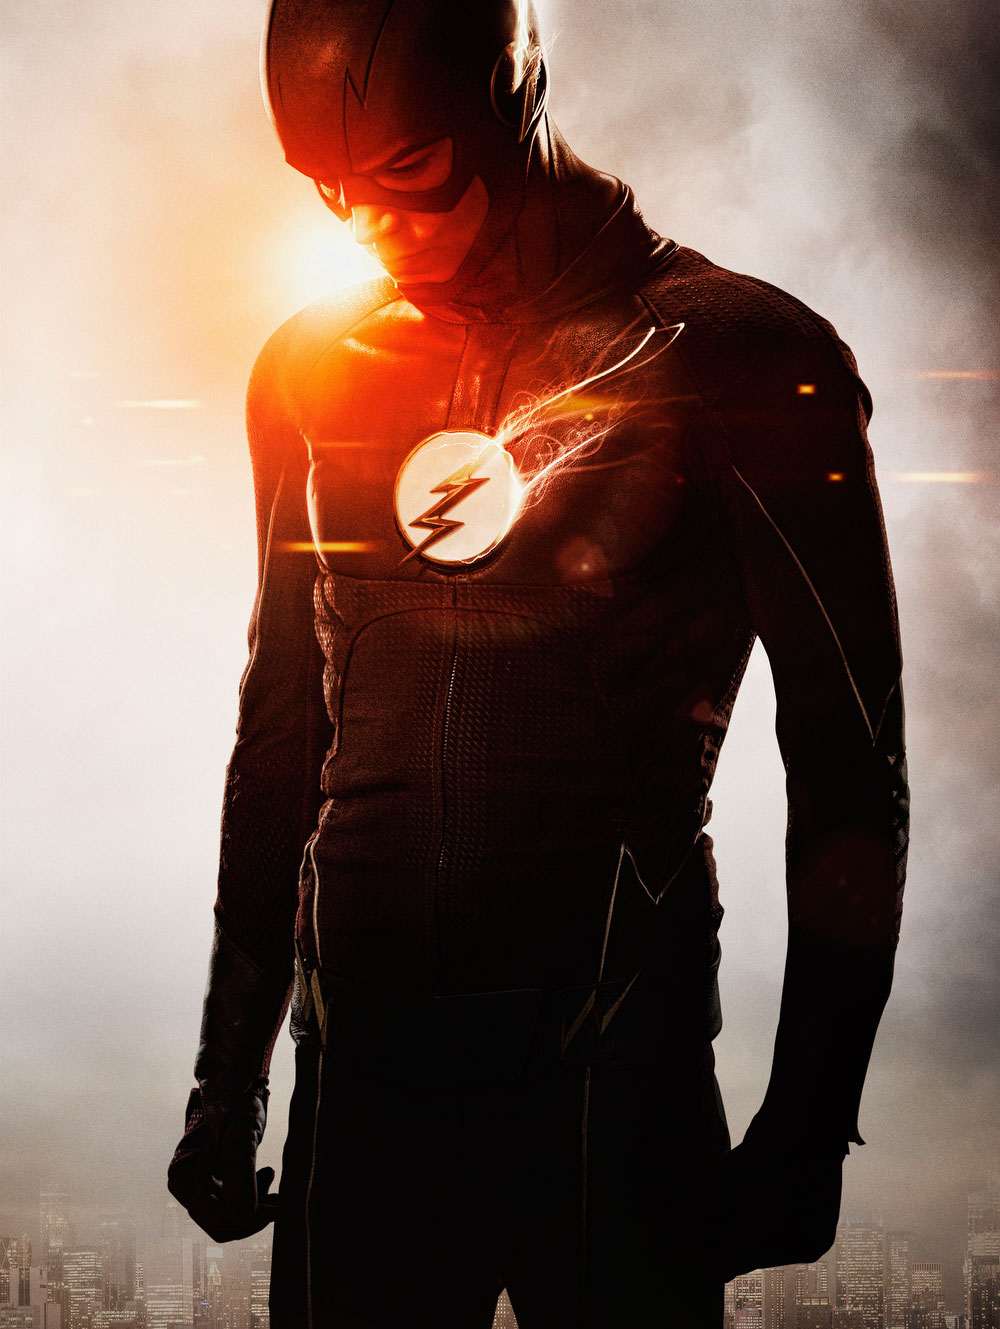 Barry Allen (Arrowverso)